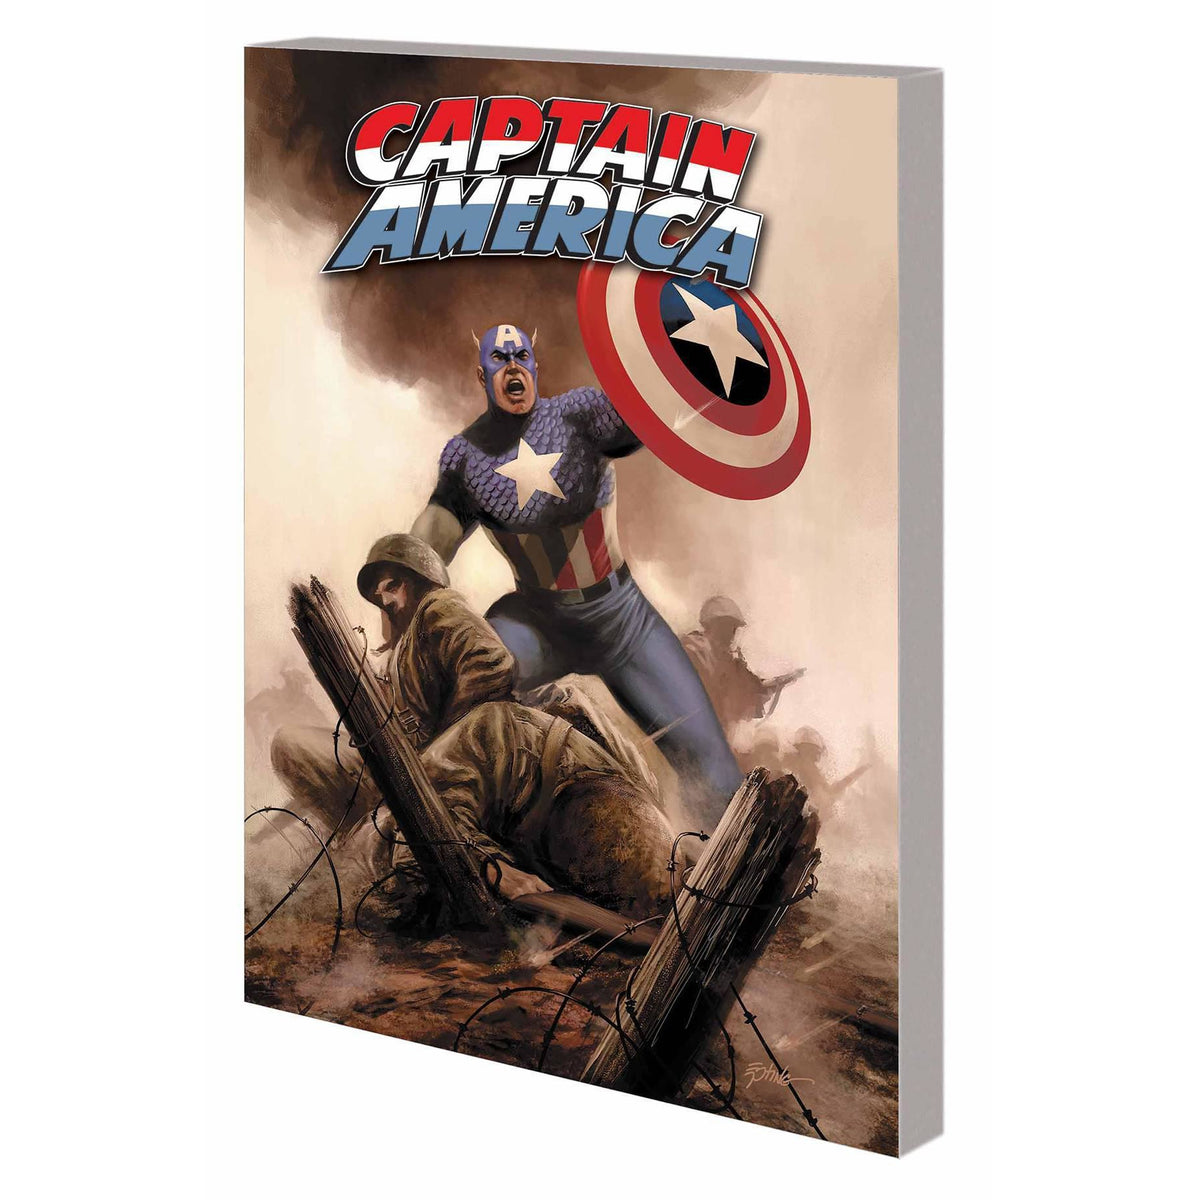 CAPTAIN AMERICA THEATER OF WAR: THE COMPLETE COLLECTION